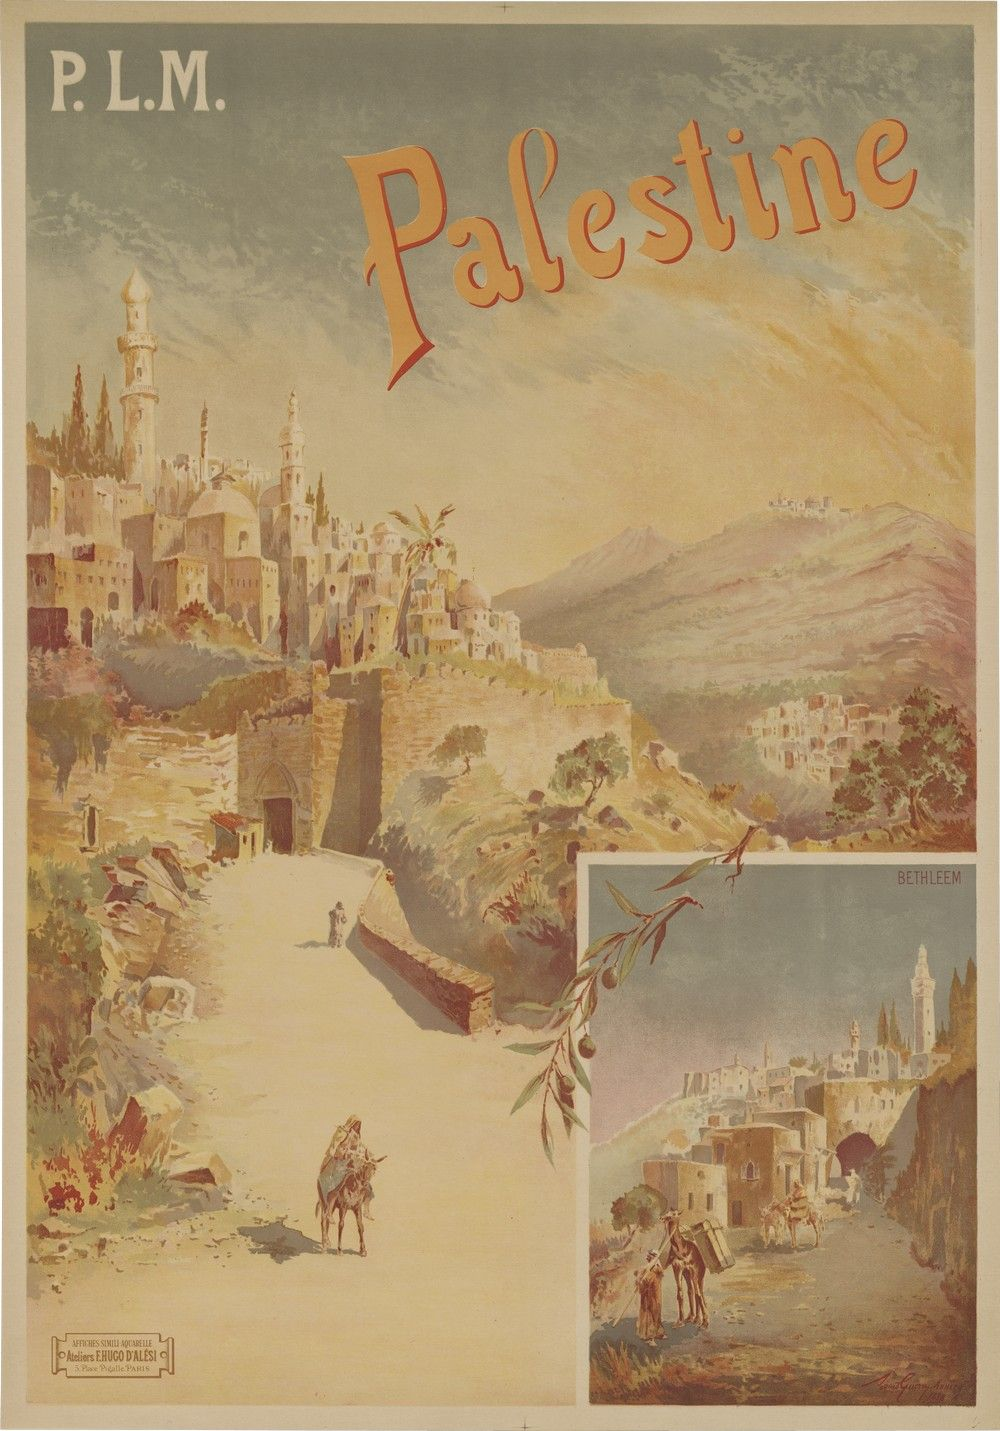 1898 French Railway Travel Poster Advertising Palestine